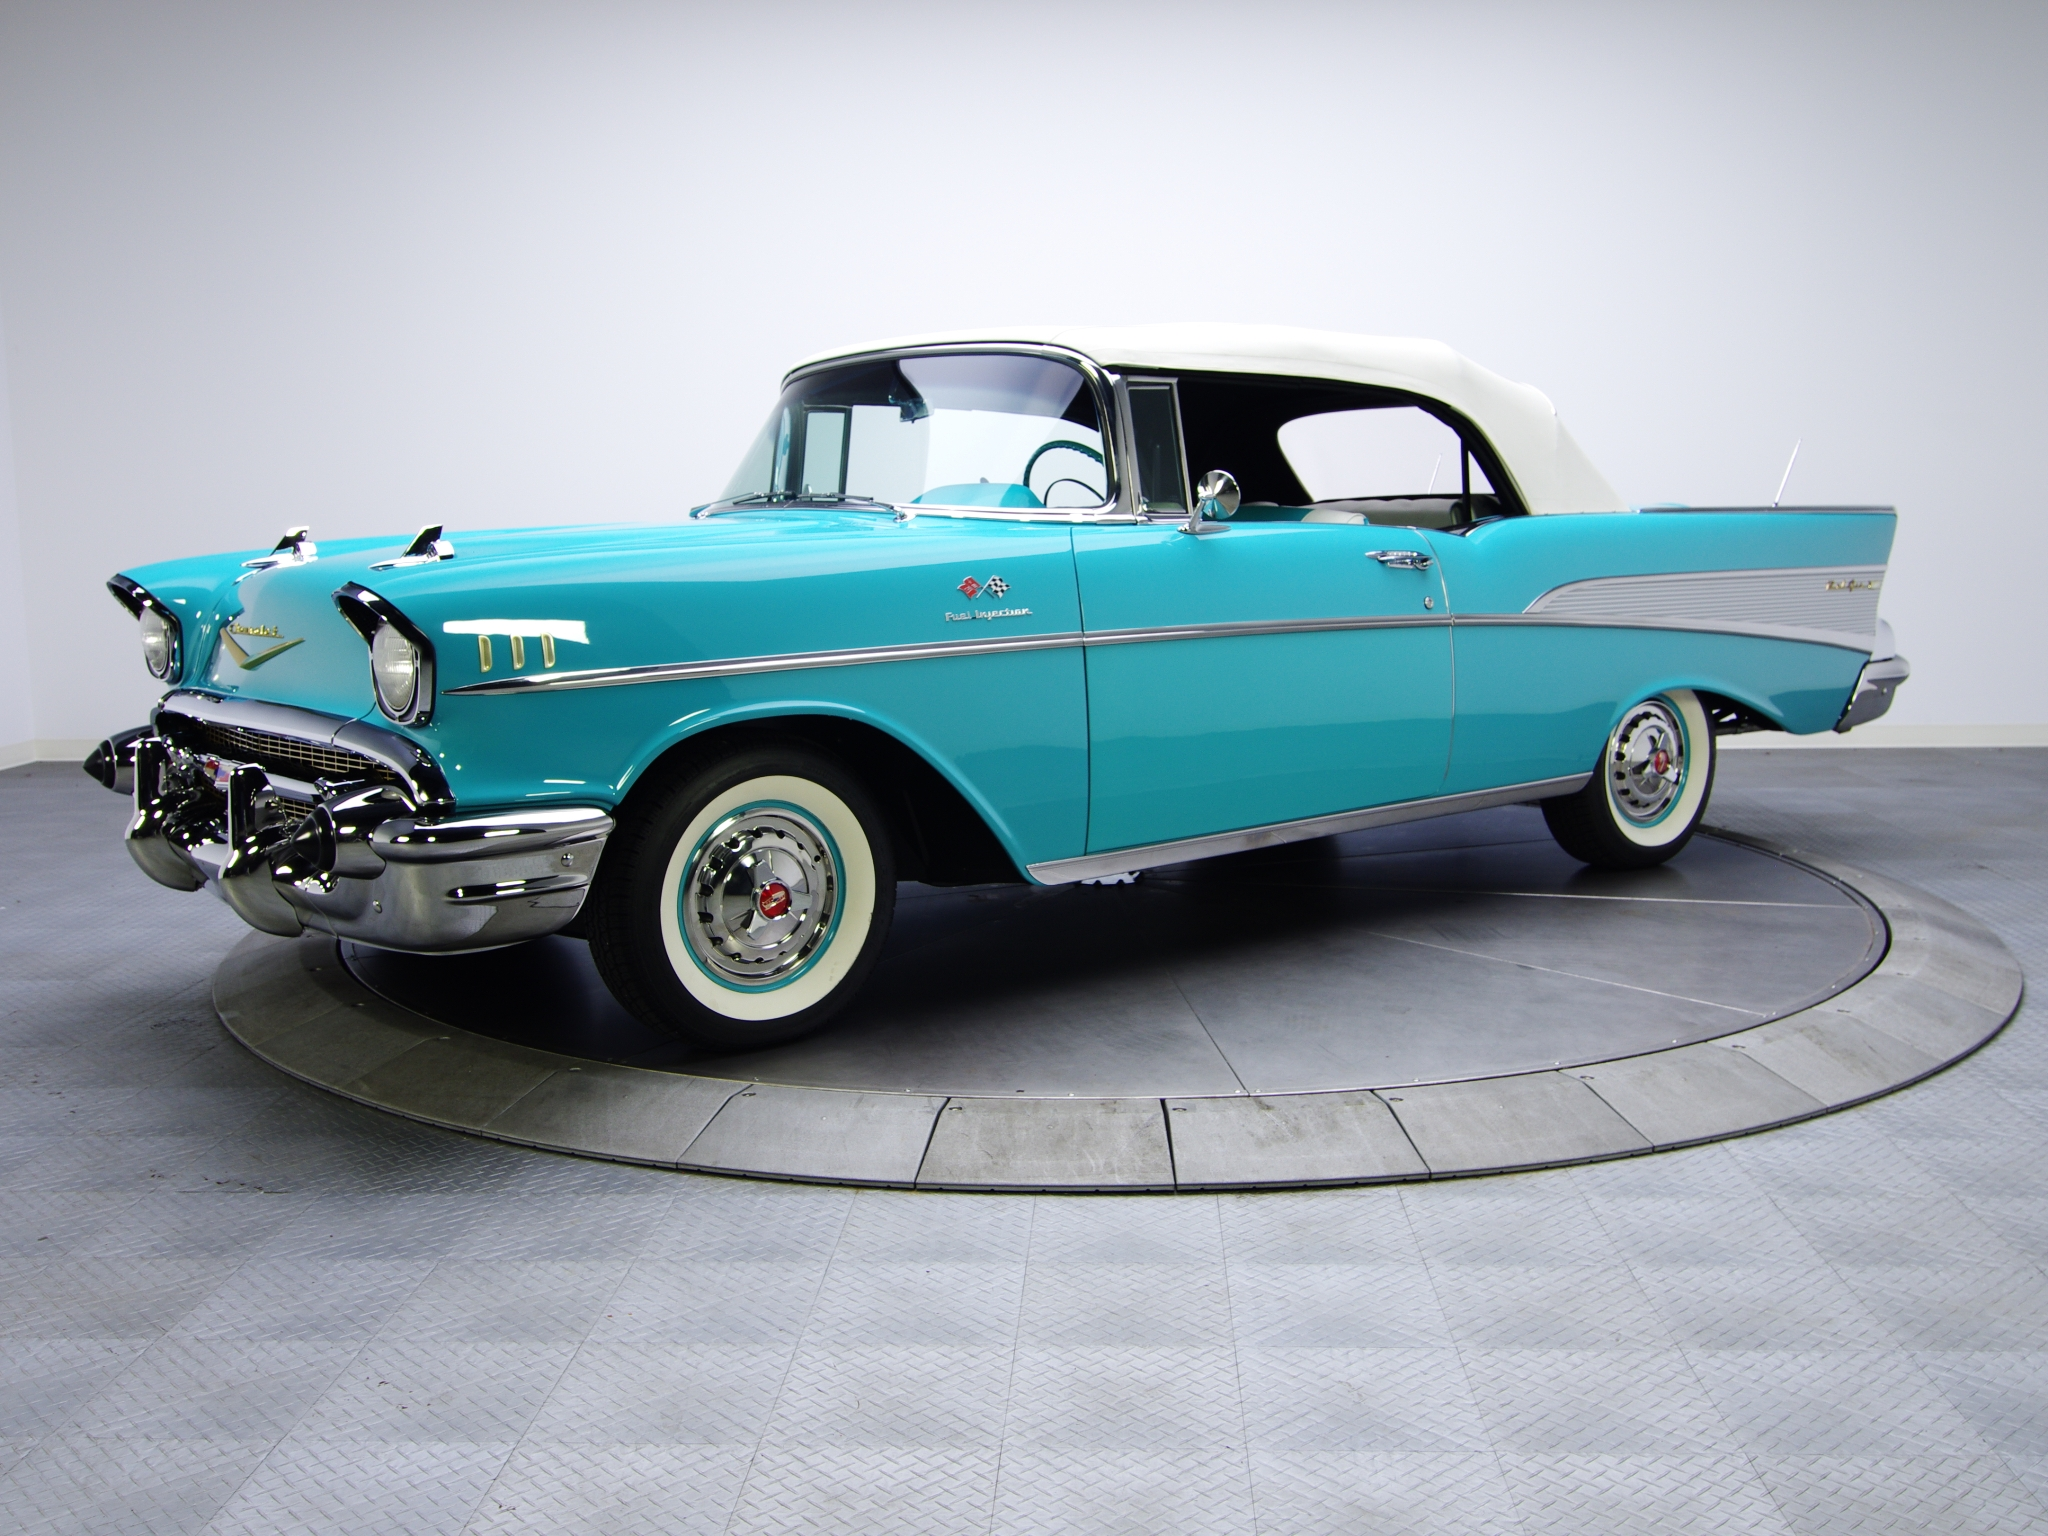 50s Car Wallpapers Iphone Download 1957 Chevy Bel Air Wallpaper Gallery